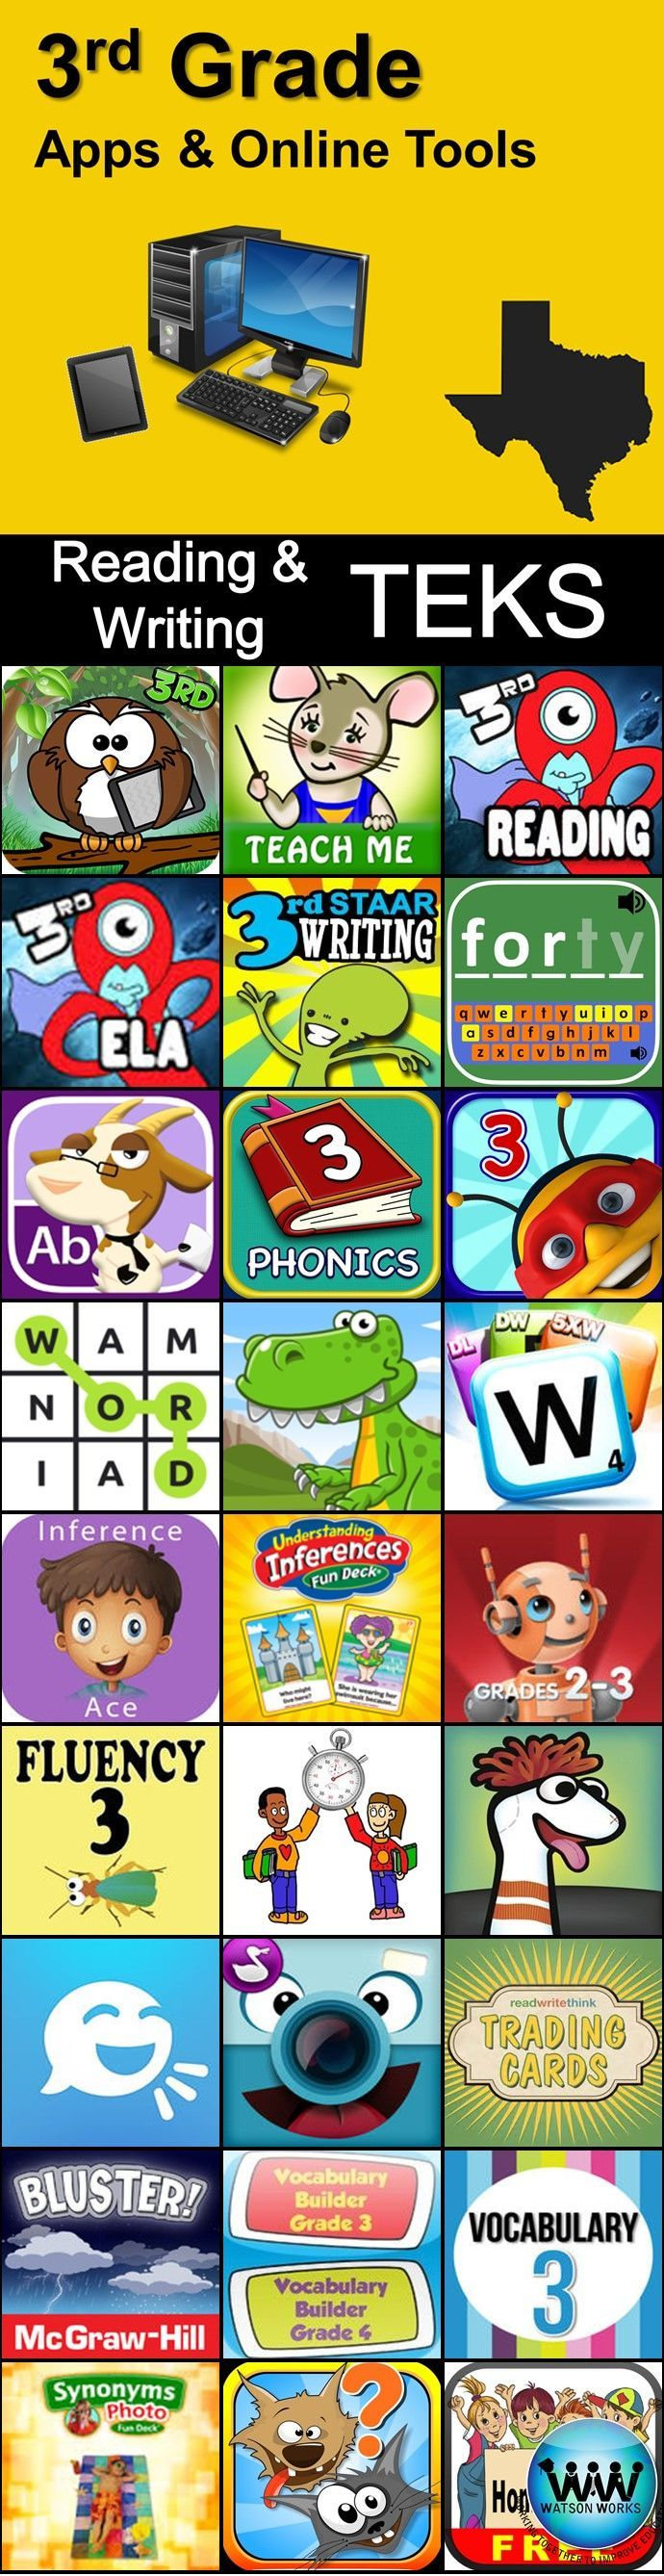 Check out this extensive list of 3rd Grade Reading & Writing iPad apps & online tools broken down for every TEKS (Texas Essential Knowledge & Skill) compiled by Heather from Watson Works! #ipads #education #edtech #3rdgrade #reading #writing #apps #iteachthird #iteach3rd #readingteacher #englishteacher